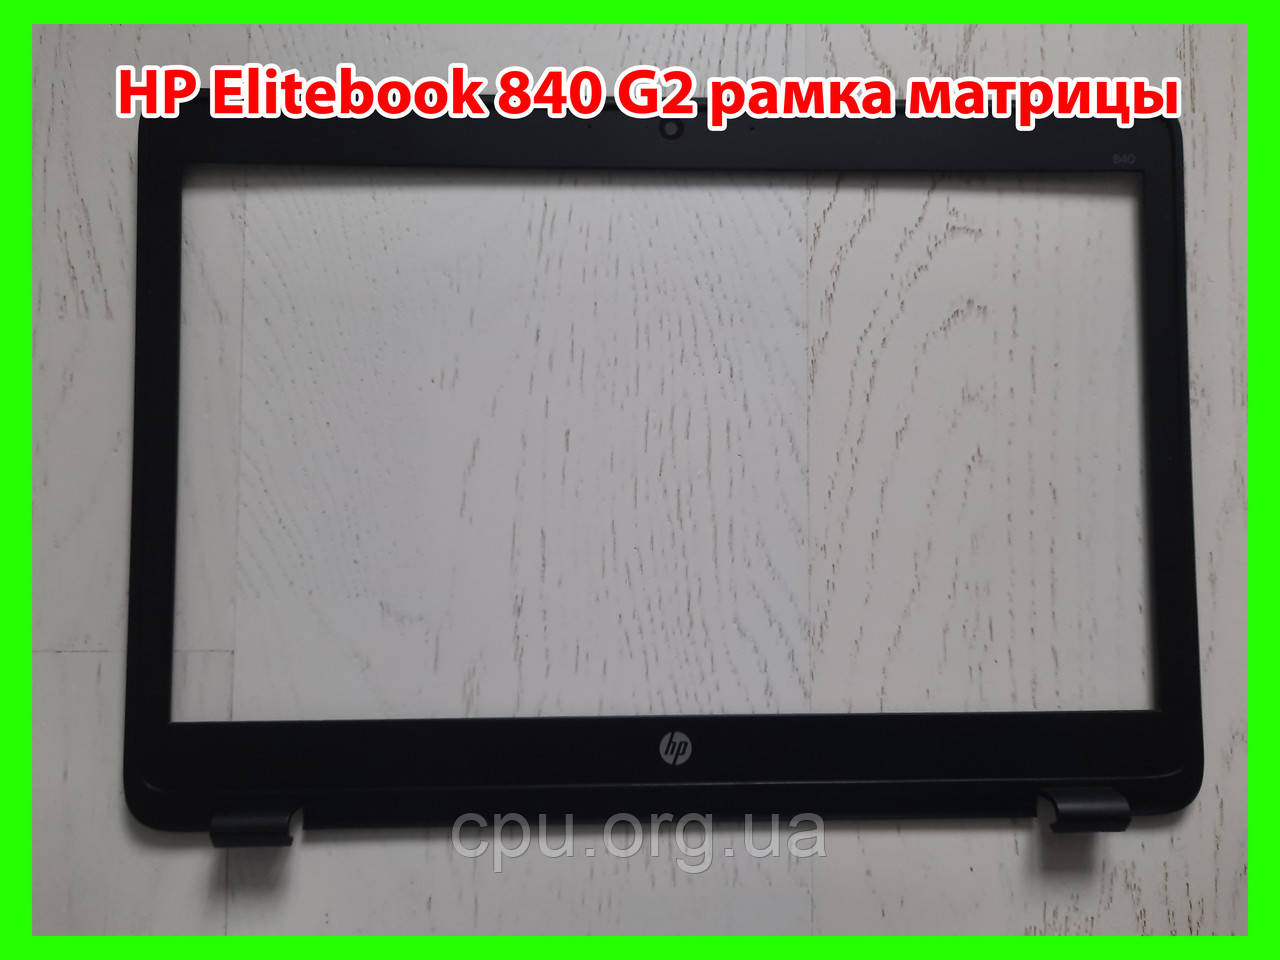 Рамка матриці HP Elitebook 840 G2 730952-001